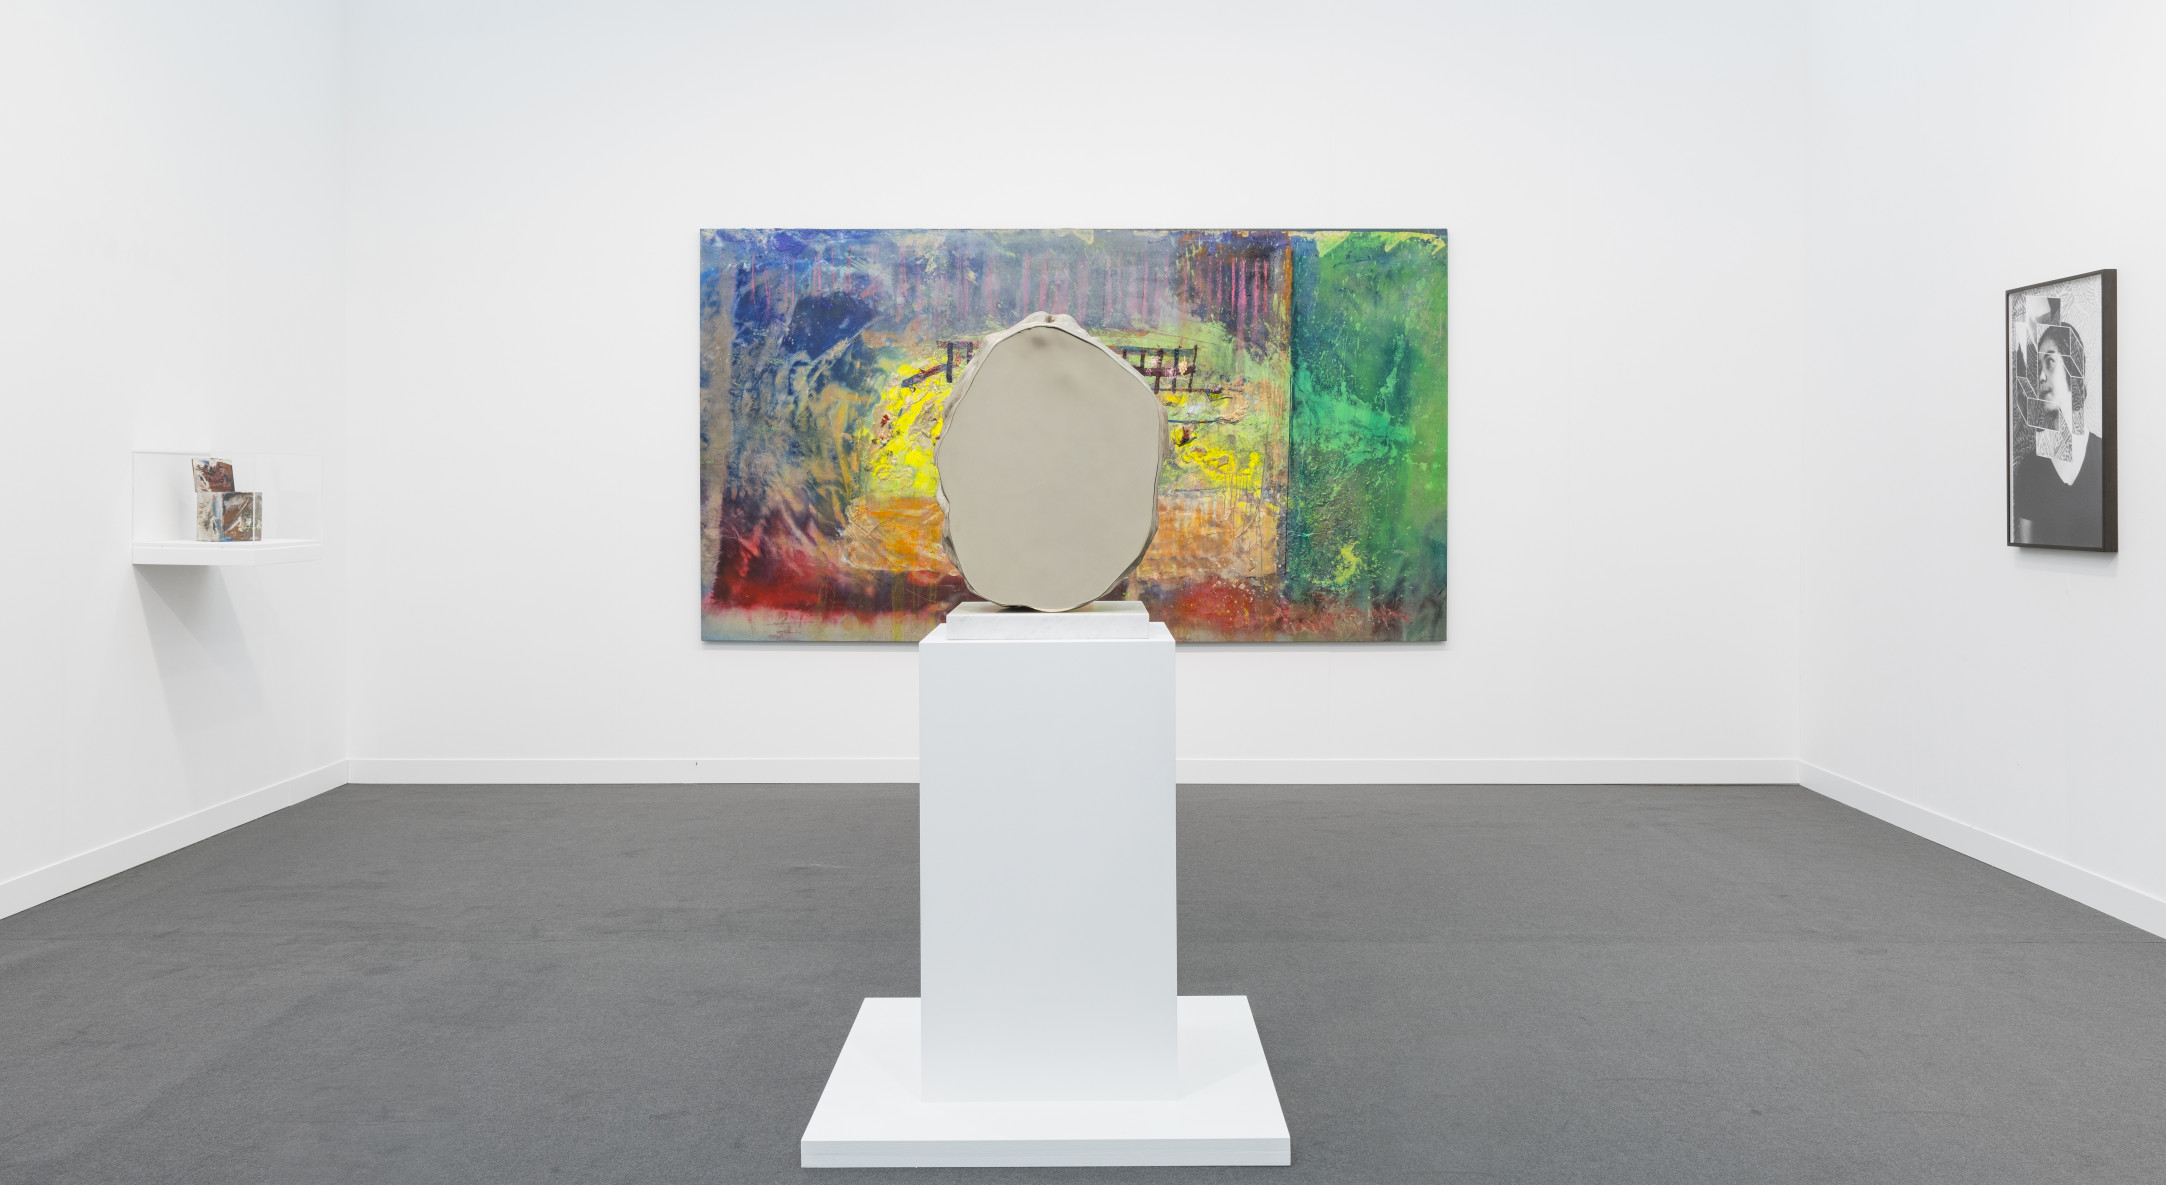 Installation view of Hales Gallery booth at Frieze London 2018